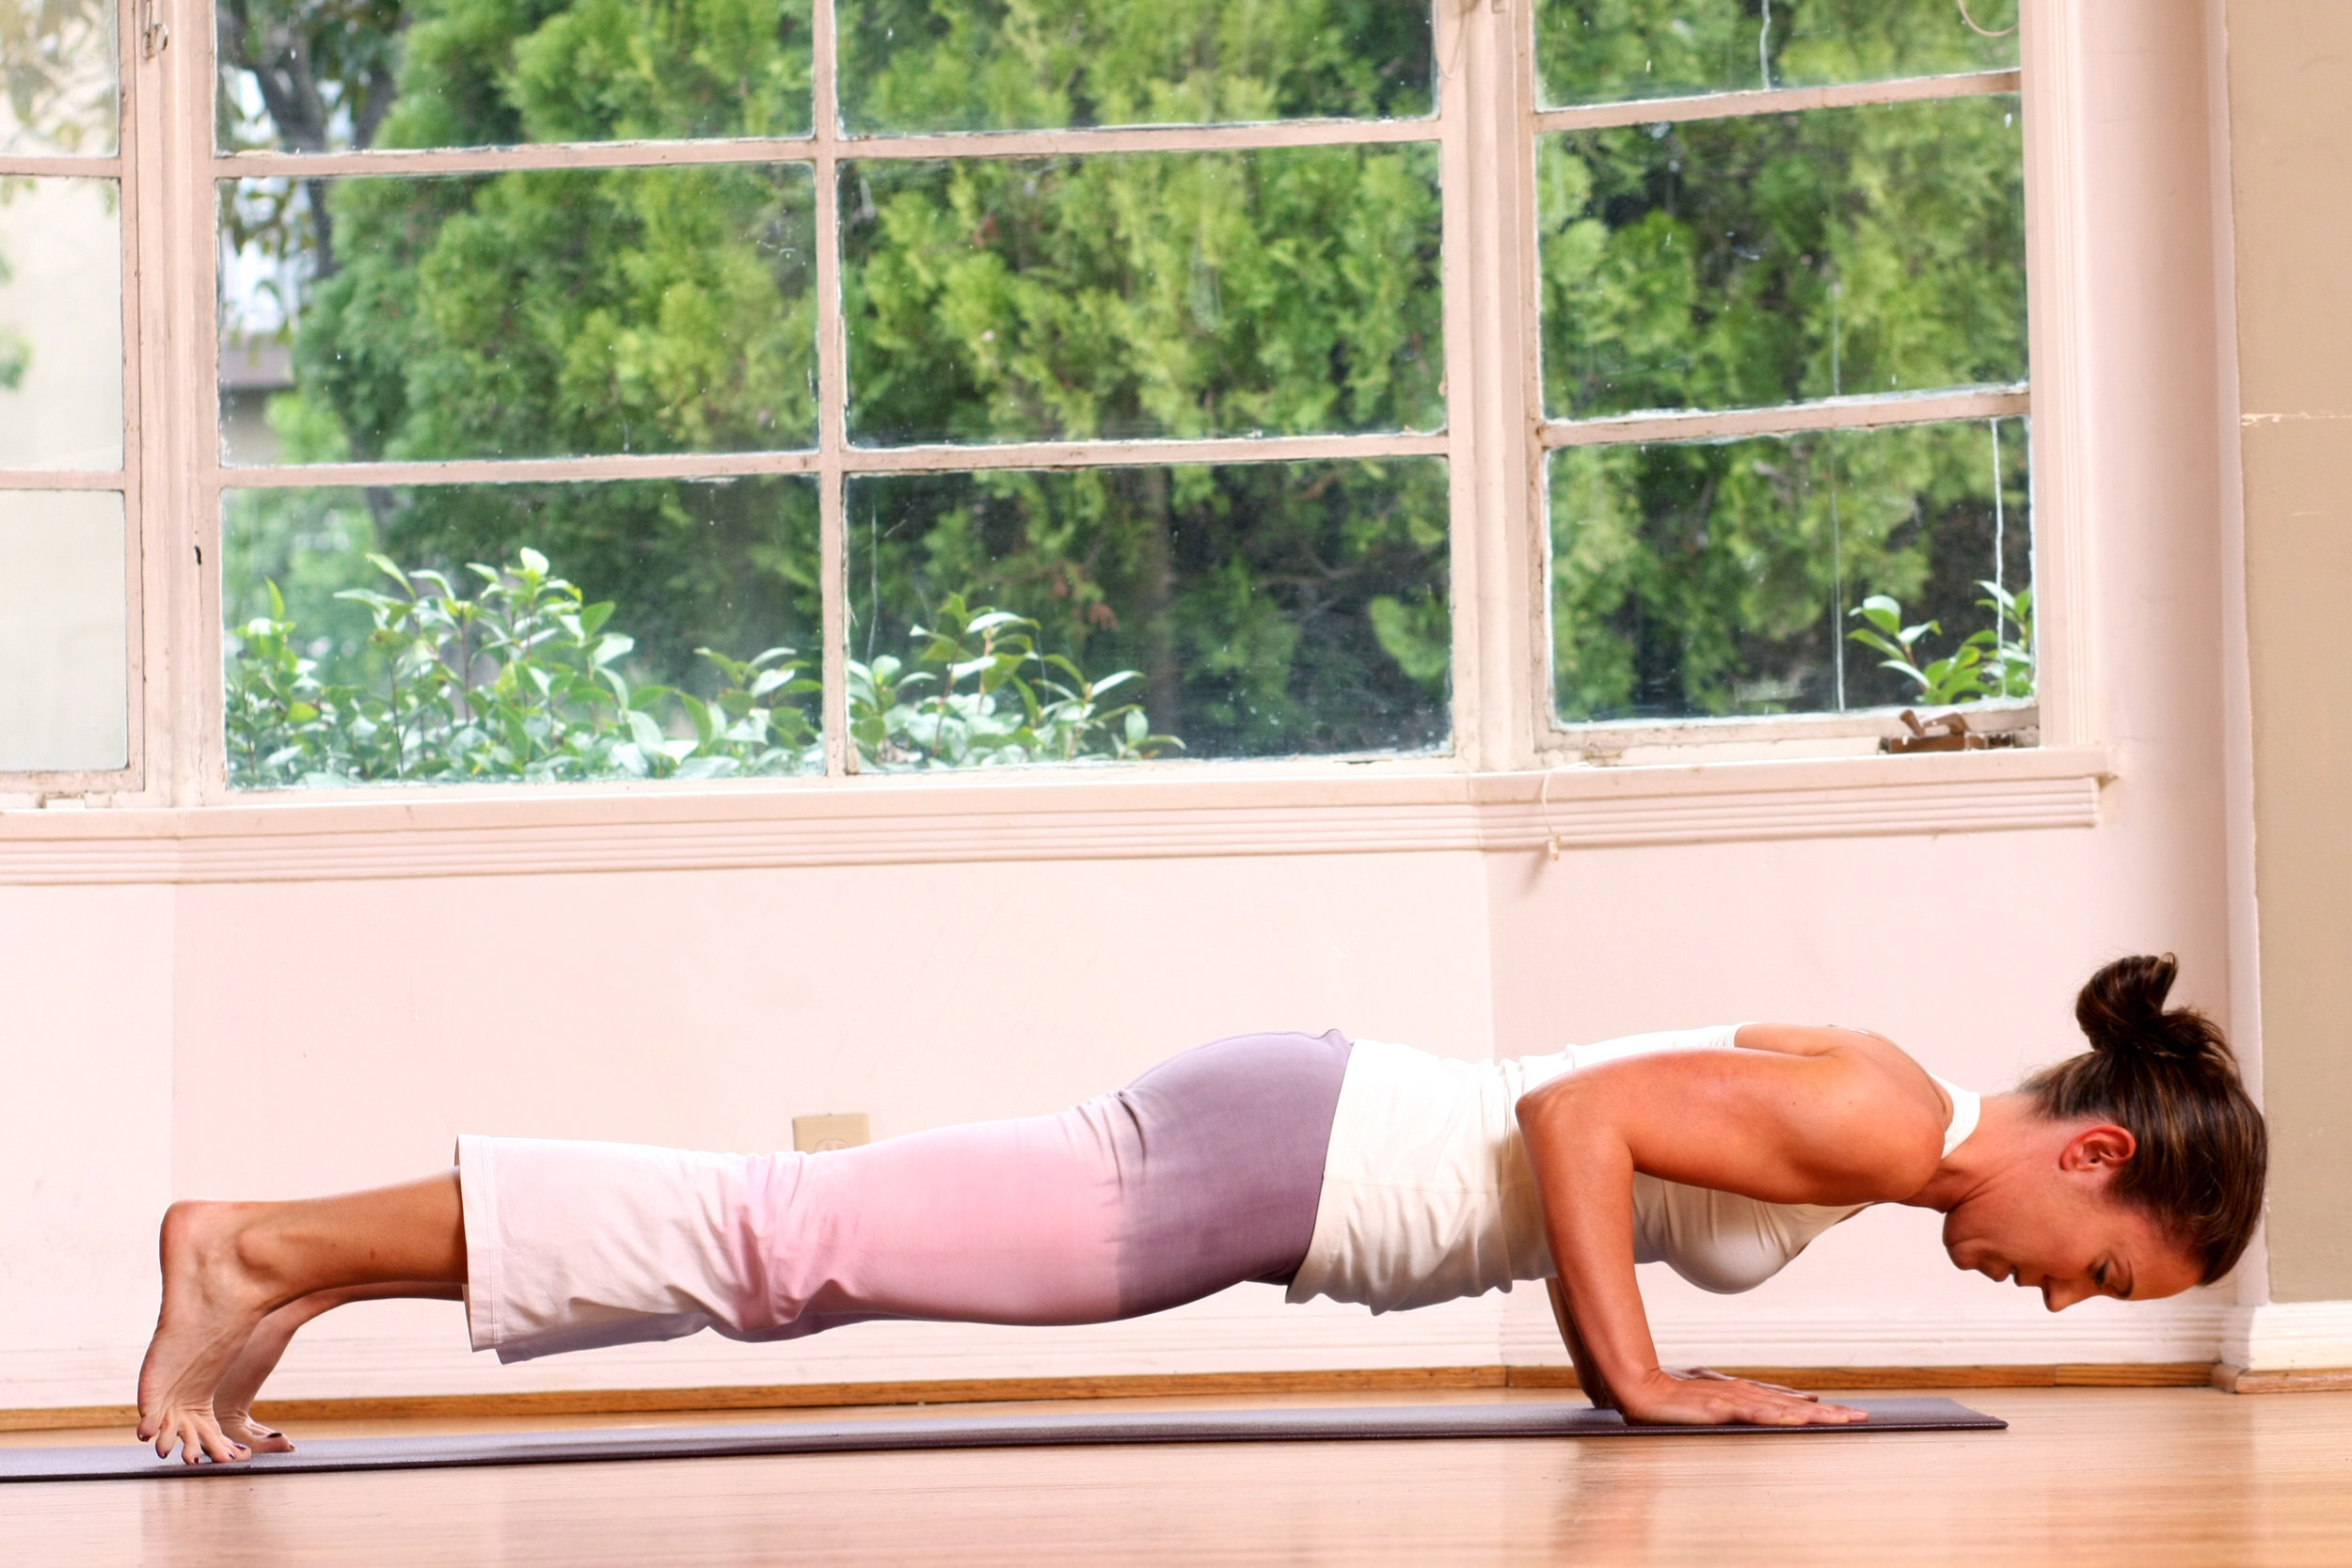 Chaturanga is practiced quite often in a vinyasa yoga class yet so many have difficulties with the posture. Here is what helped me.